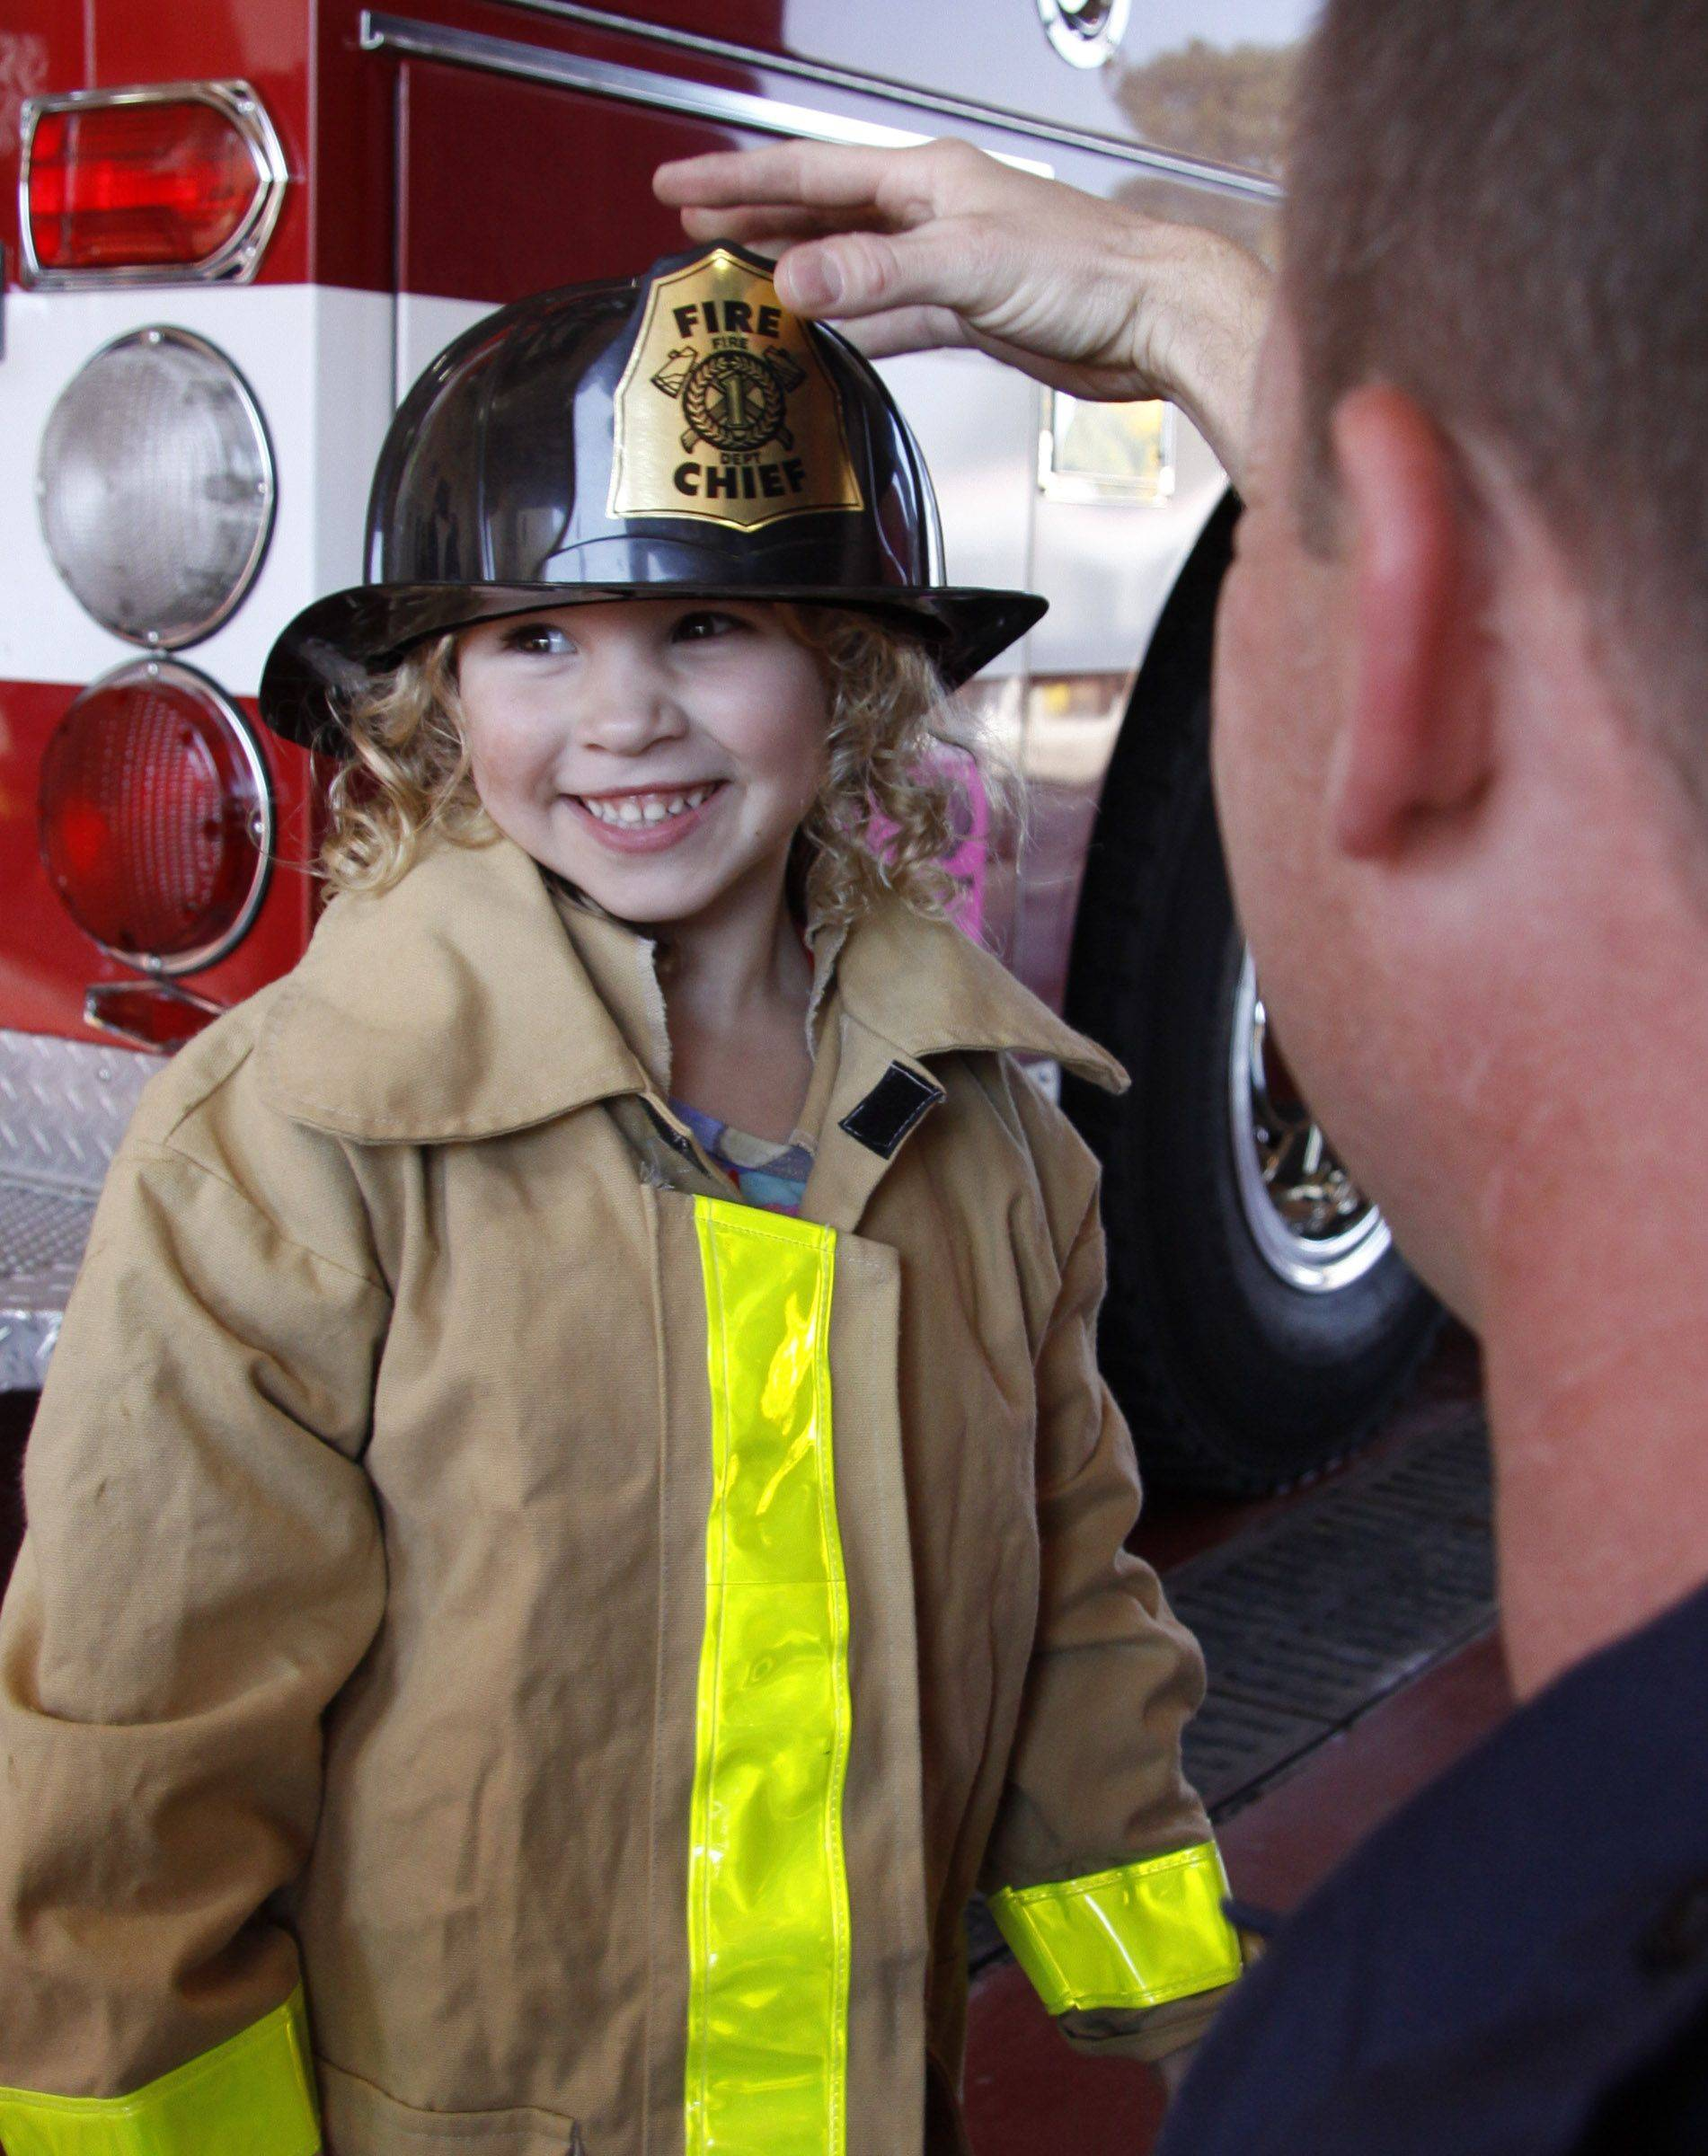 Sophia Opila, 4, of Lombard, tries on the firefighter's gear made smaller for the children at the Villa Park Fire Department's open house on fire safety Saturday in Villa Park.